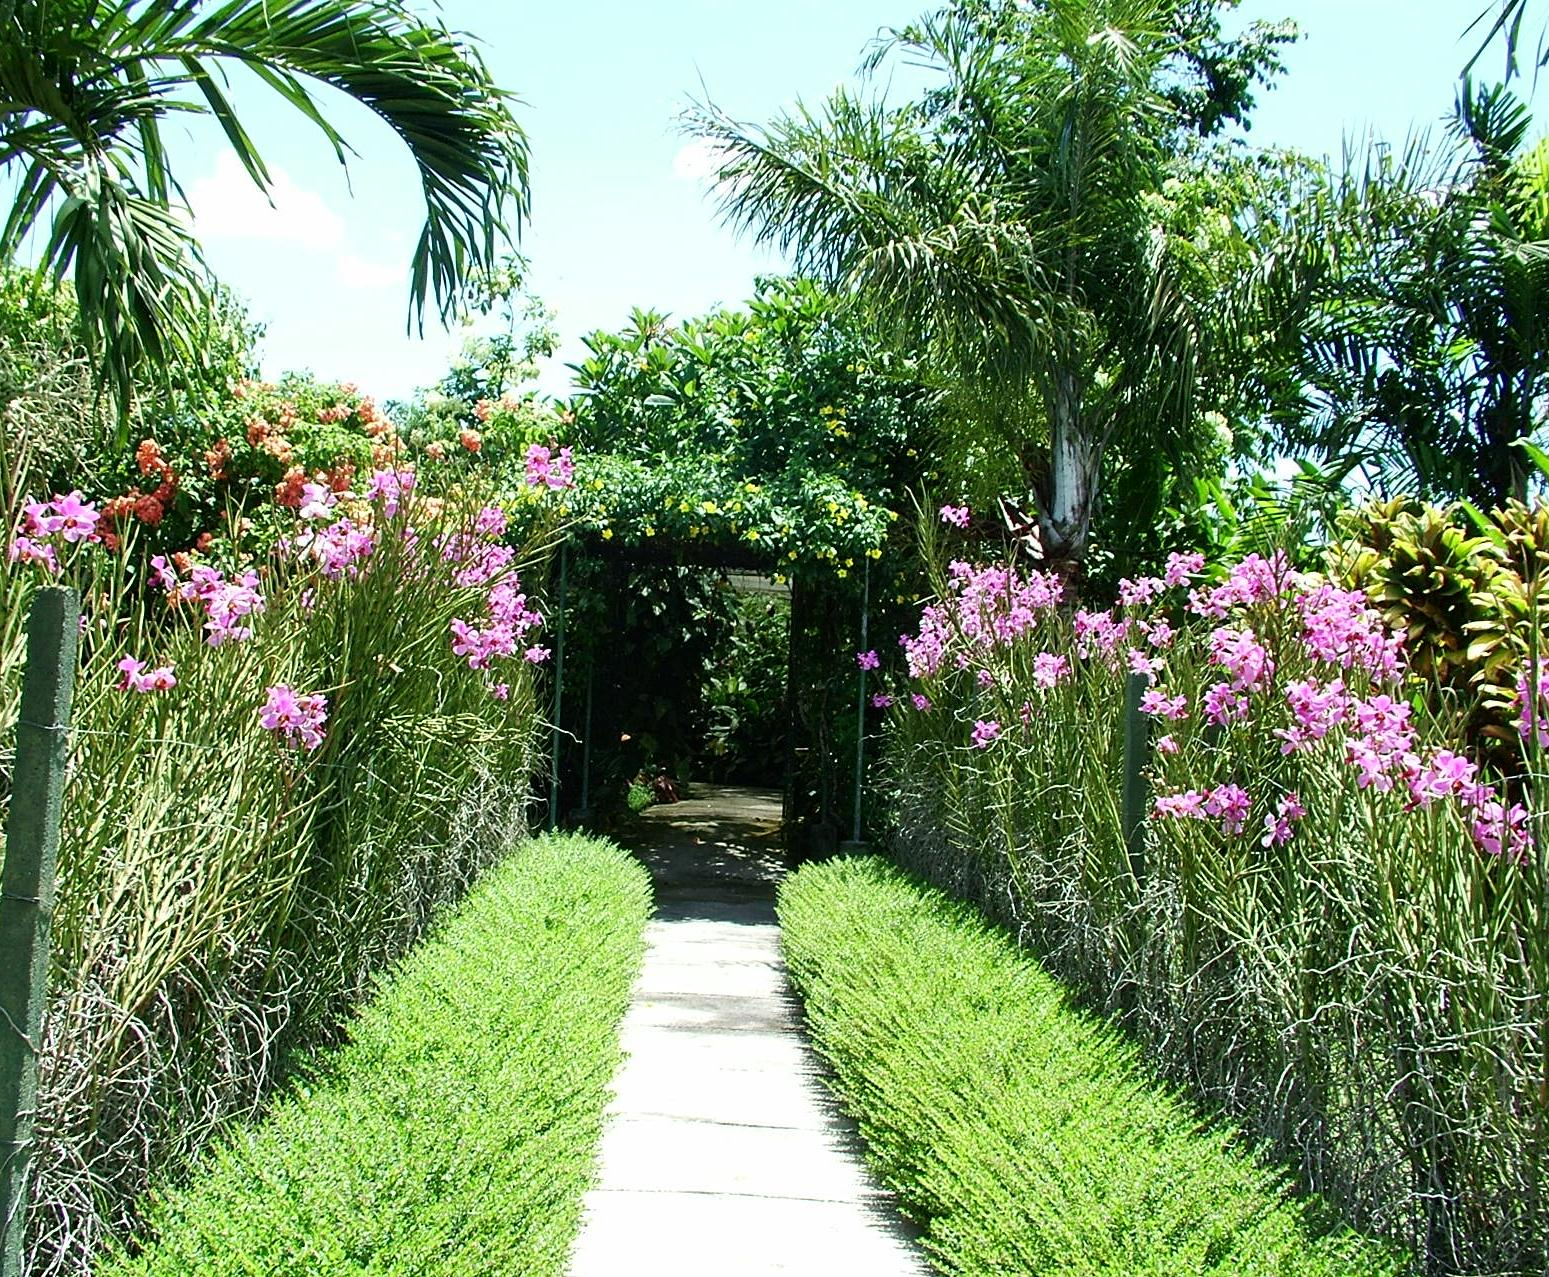 The Tropical Garden, For Example, Is Dominated By The Type Of Plants